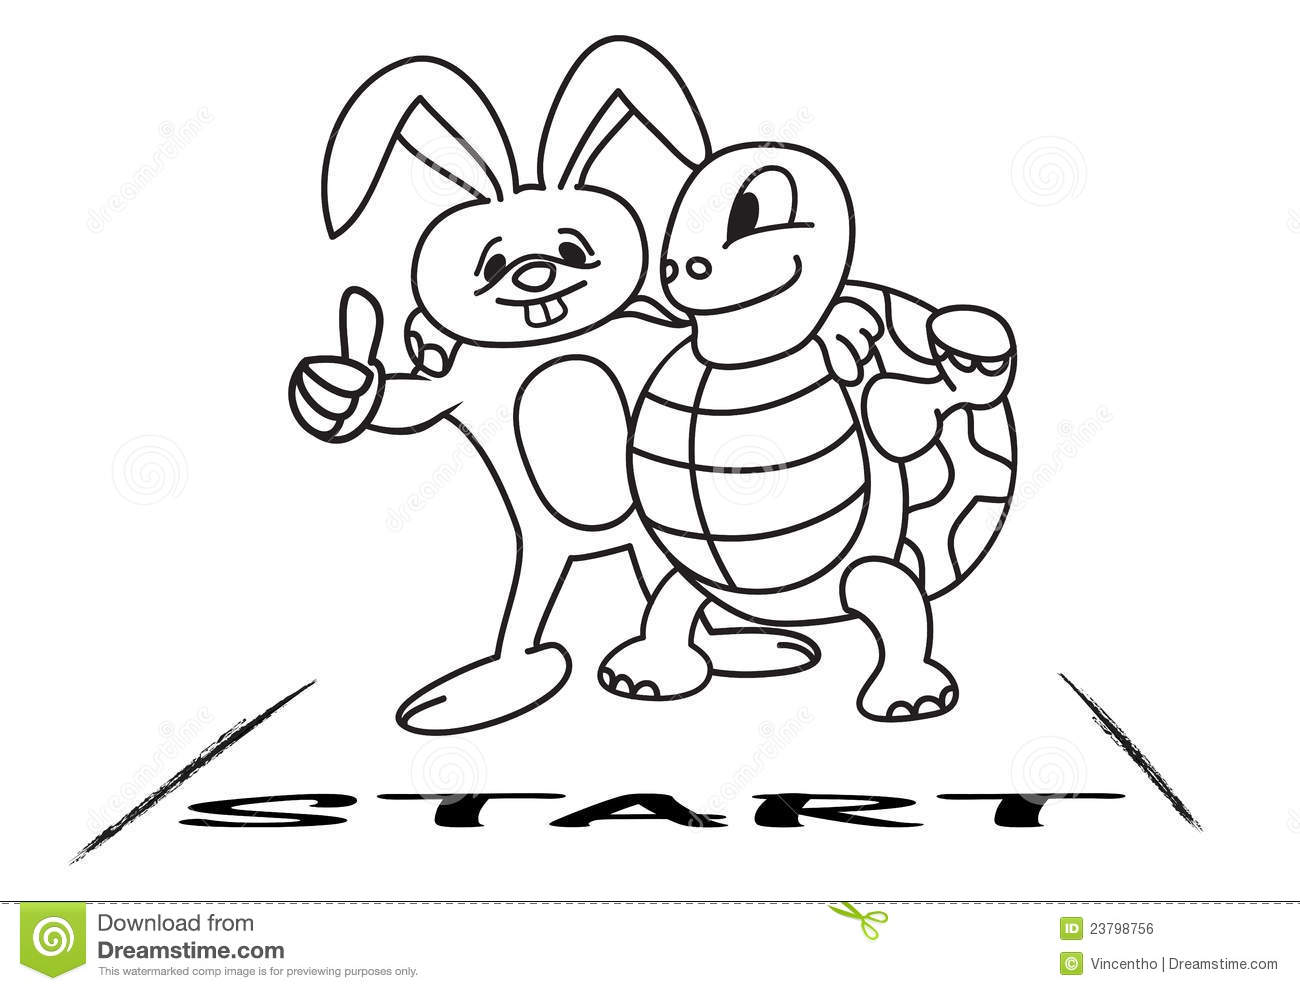 Tortoise And Hare At The Starting Line Royalty Free Stock Image.